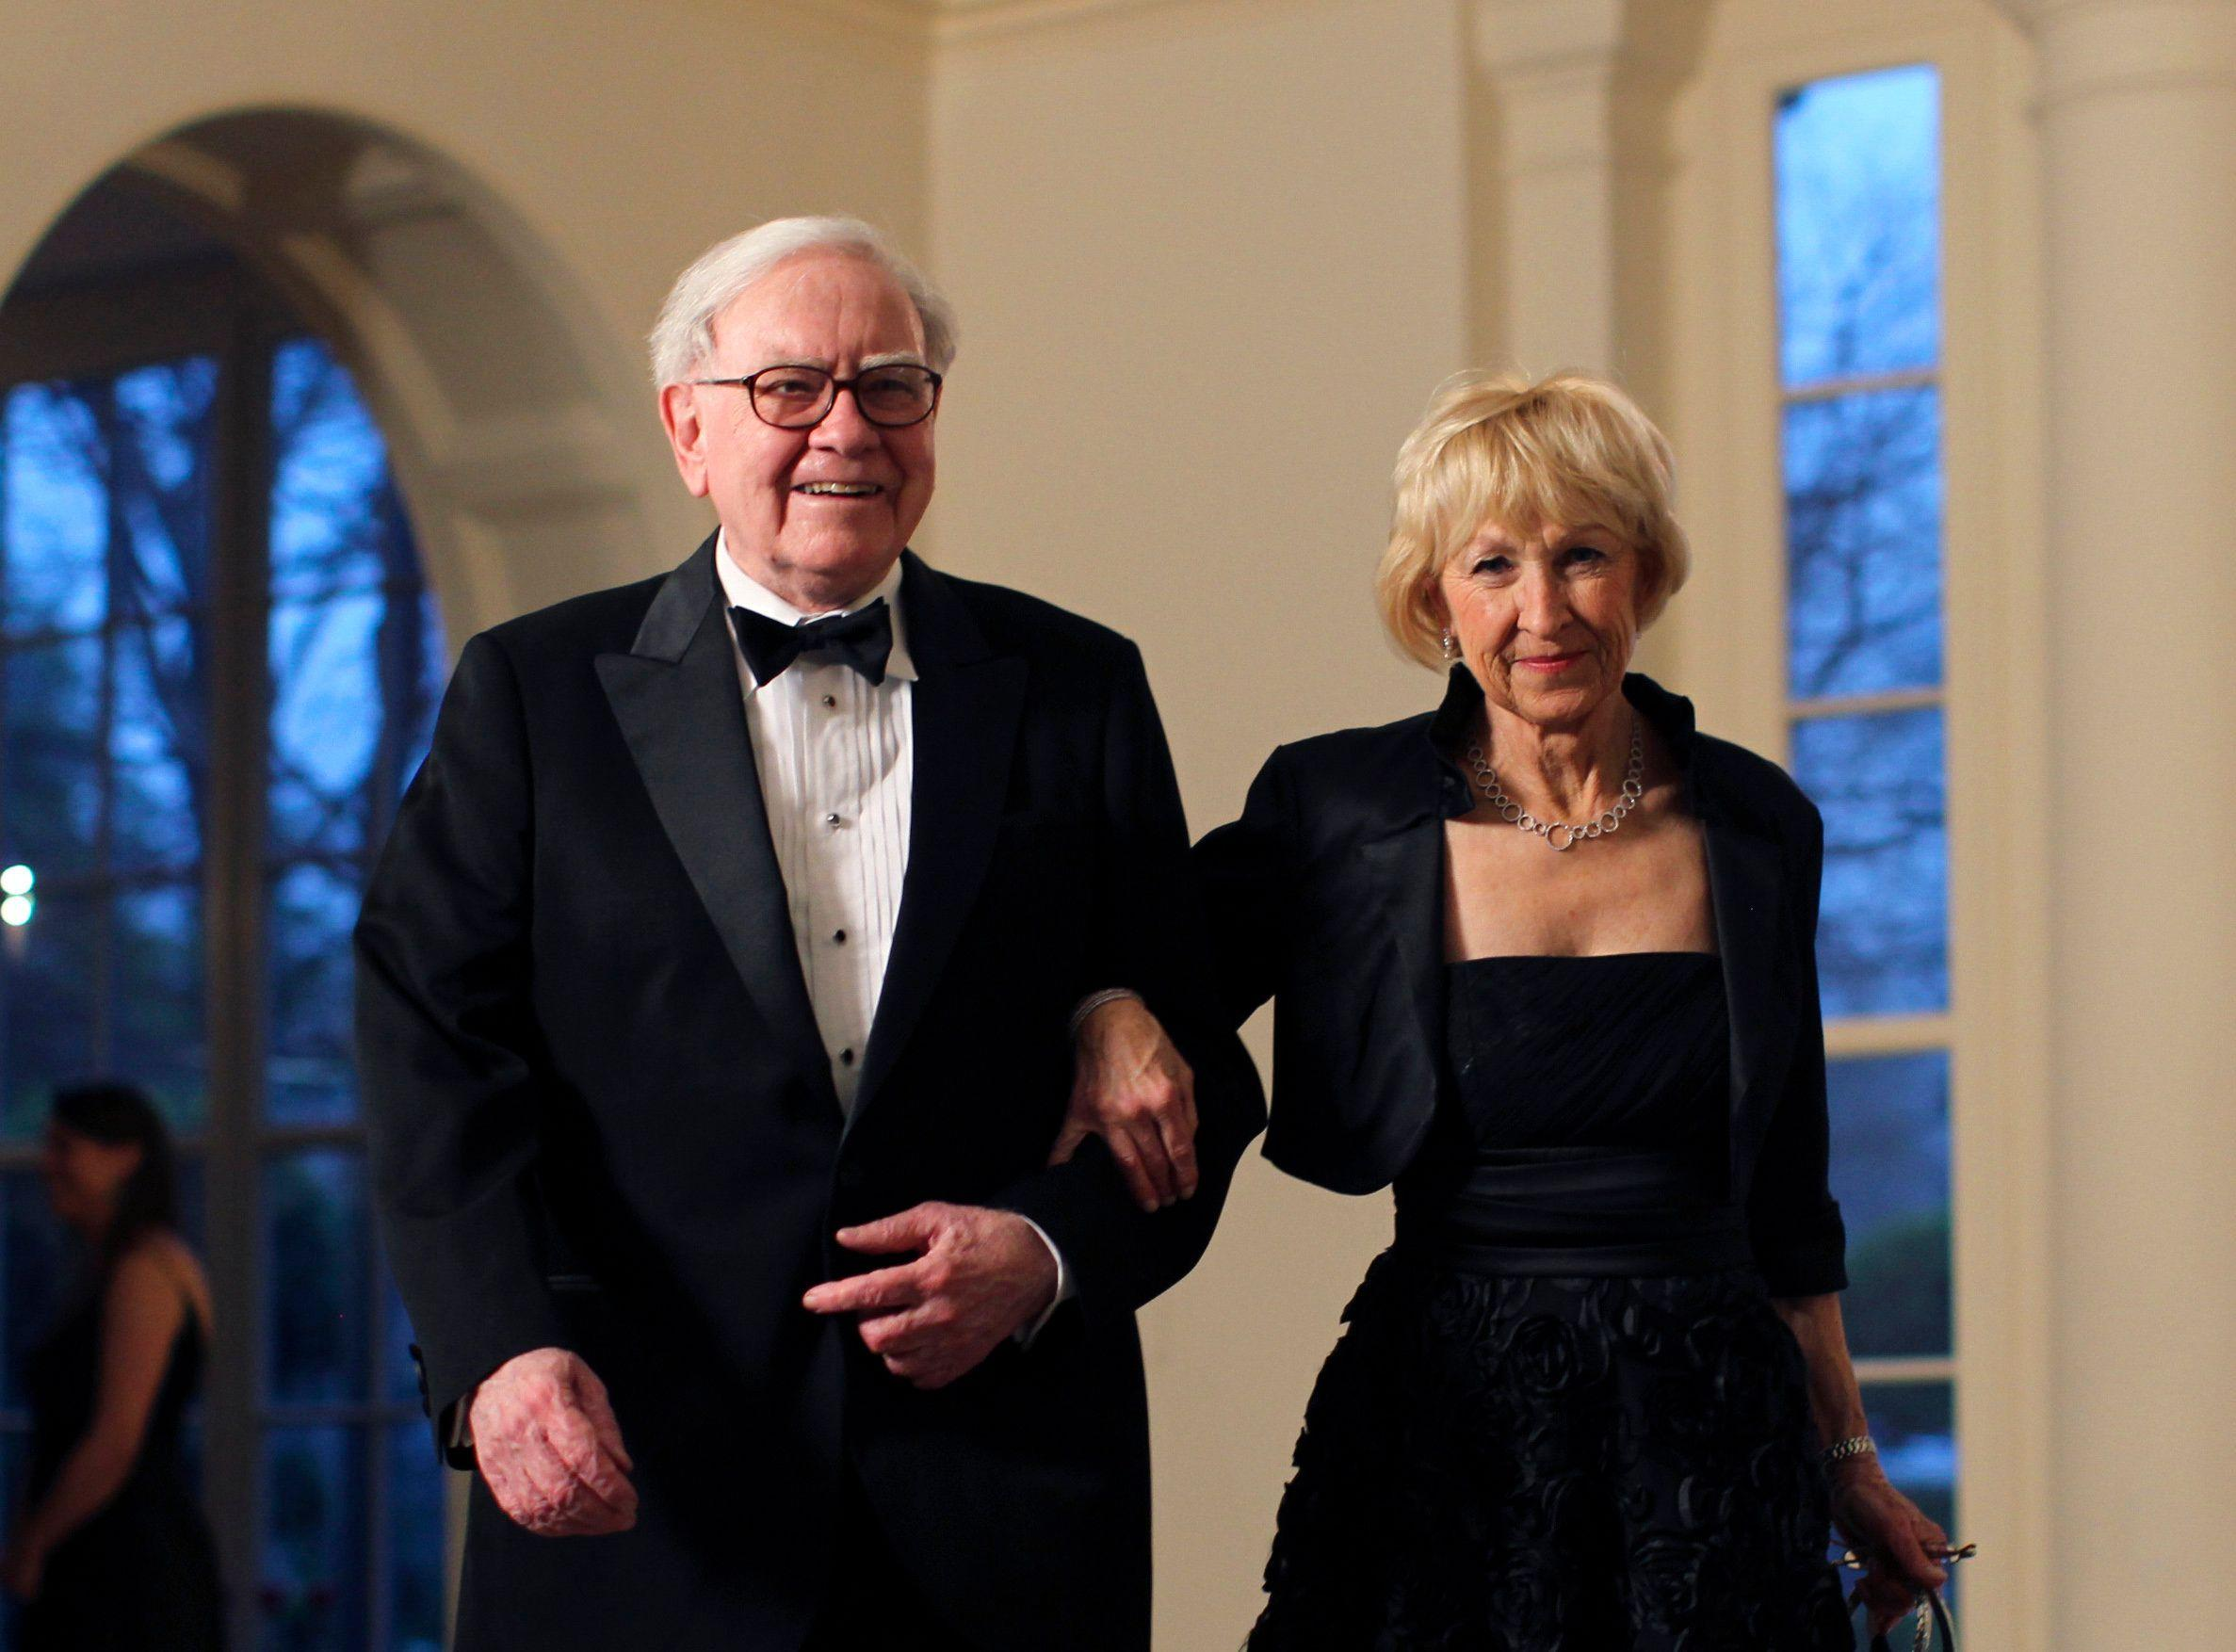 Warren Buffett's definition of 'true success' has nothing to do with money